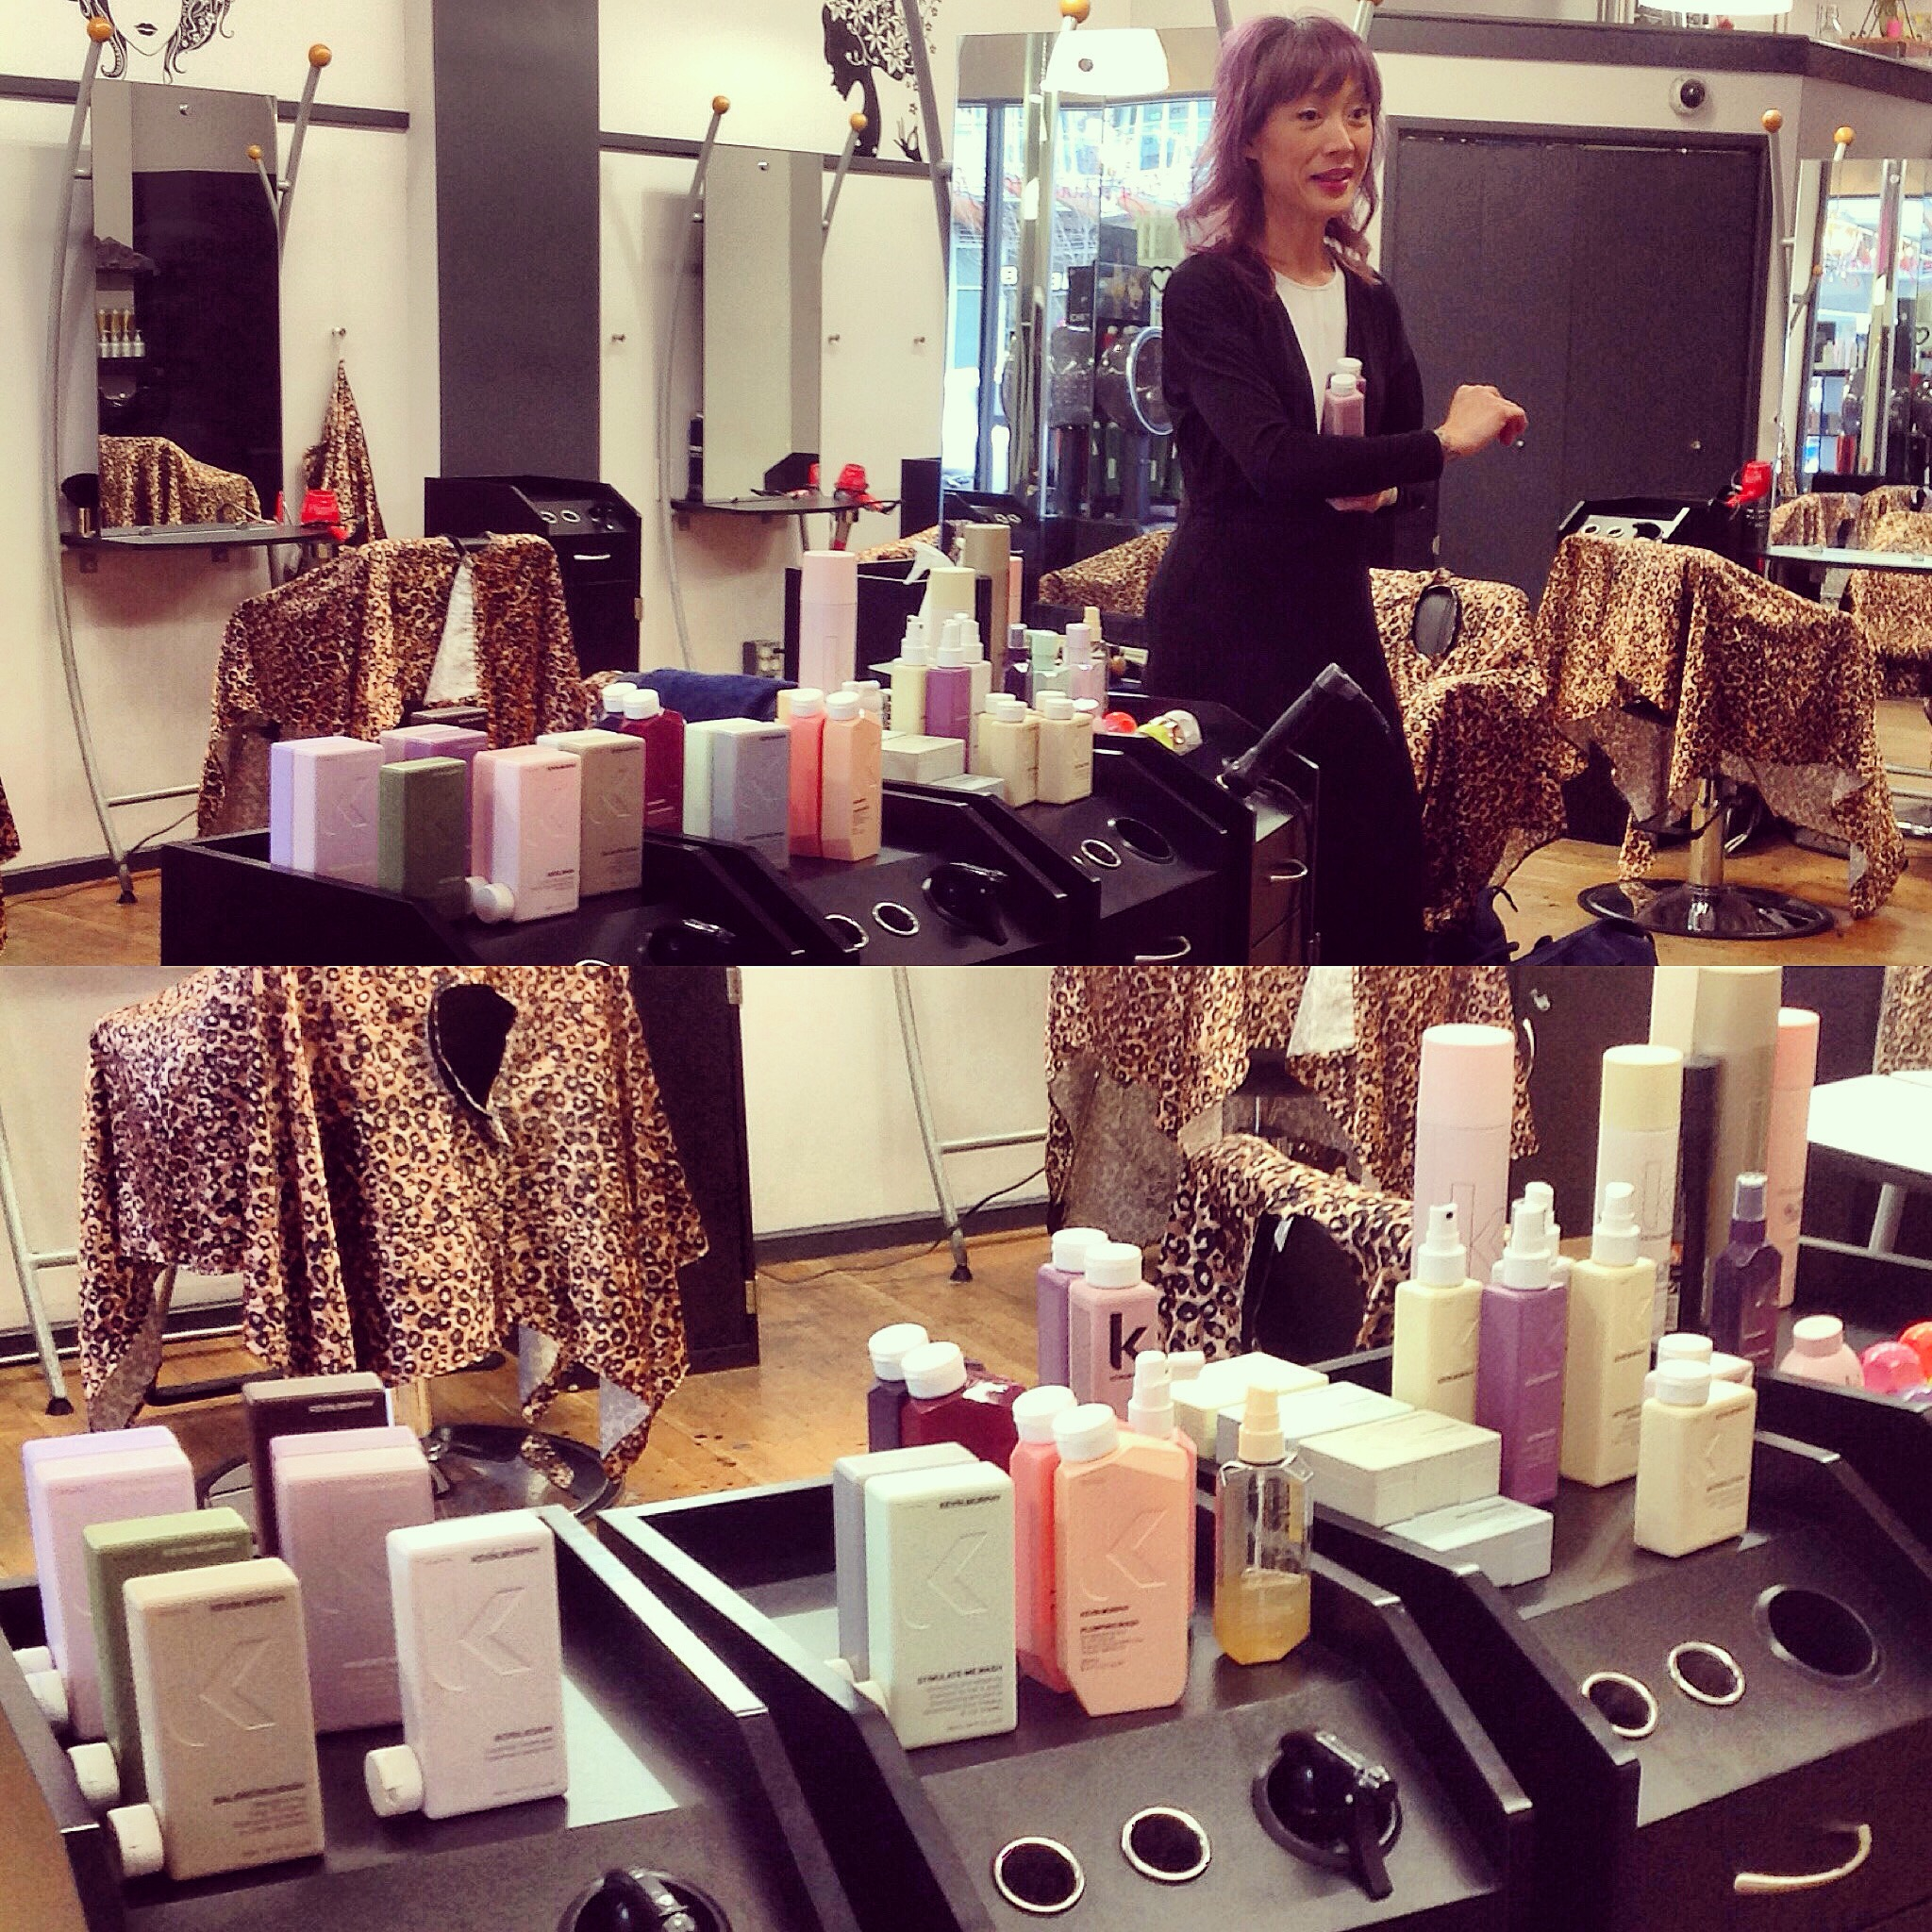 Display of KEVIN MURPHY LINE